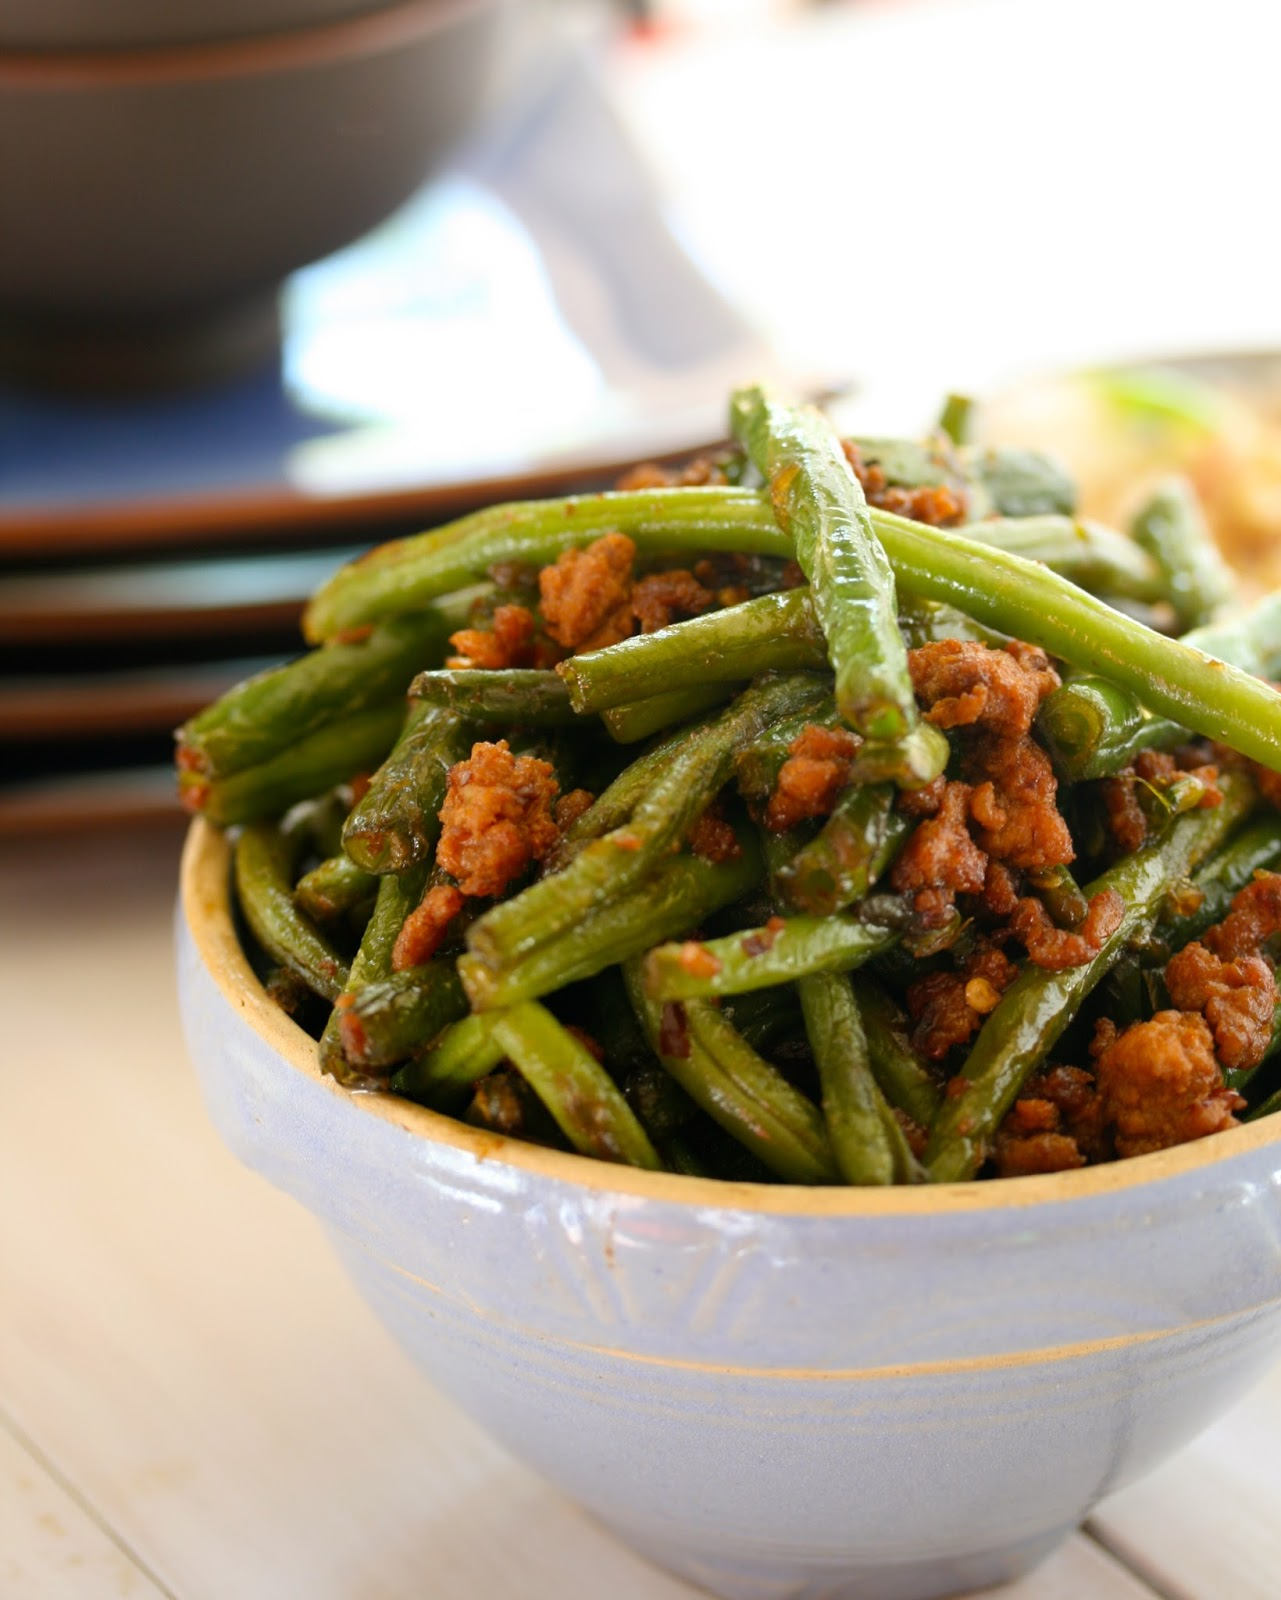 Angie Cooks In Portland: Spicy Chinese Green Beans with Ground Pork